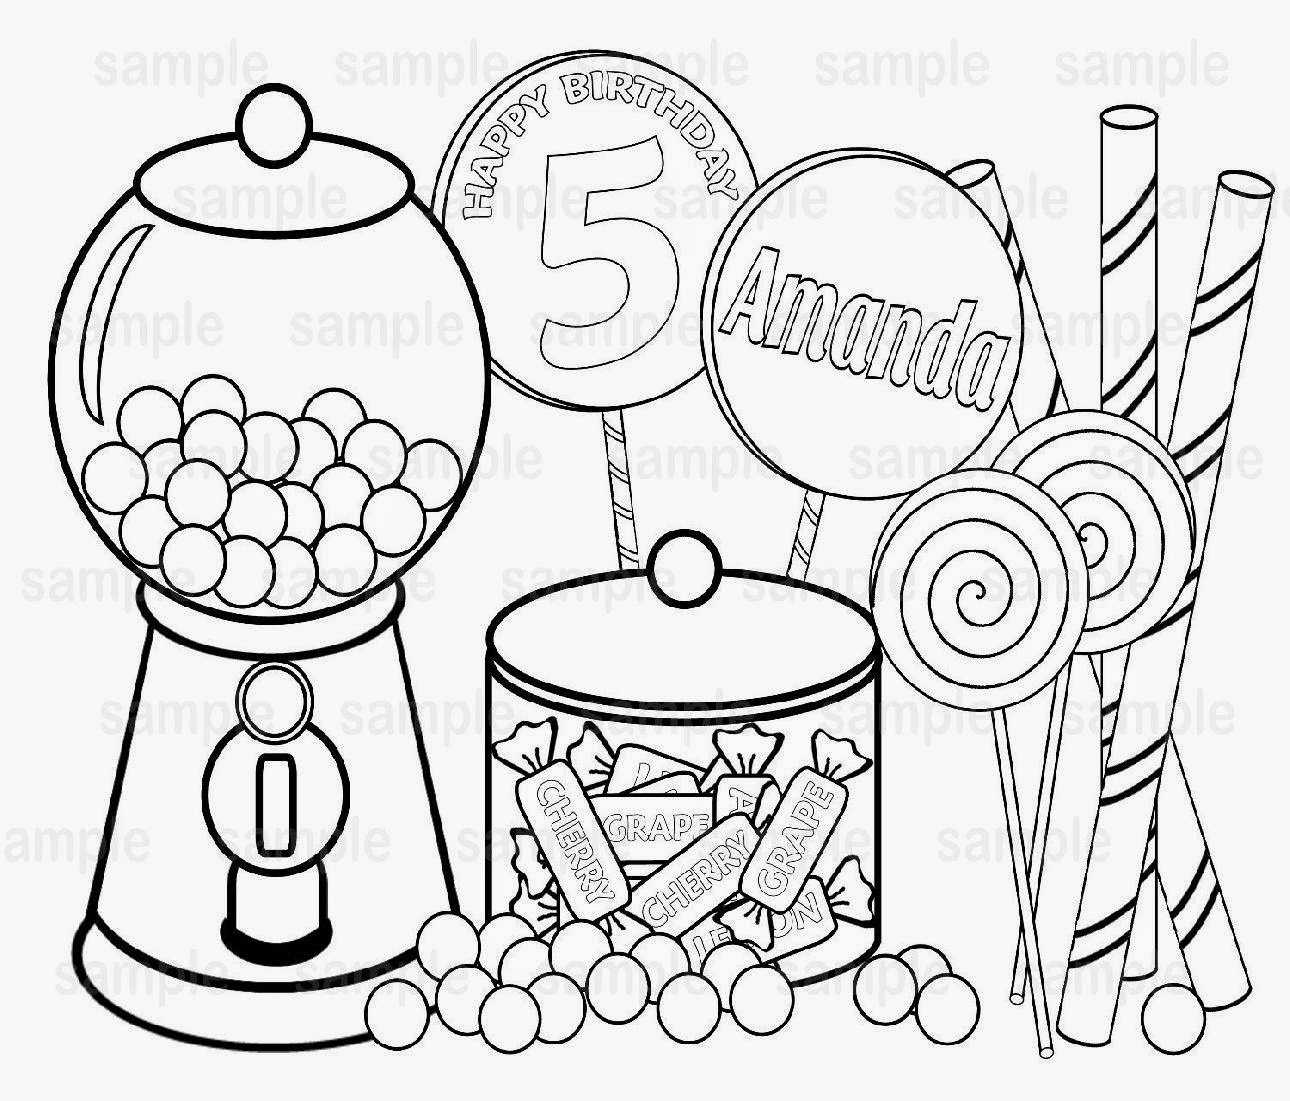 Candy cane free coloring pages search results calendar for Candy color pages